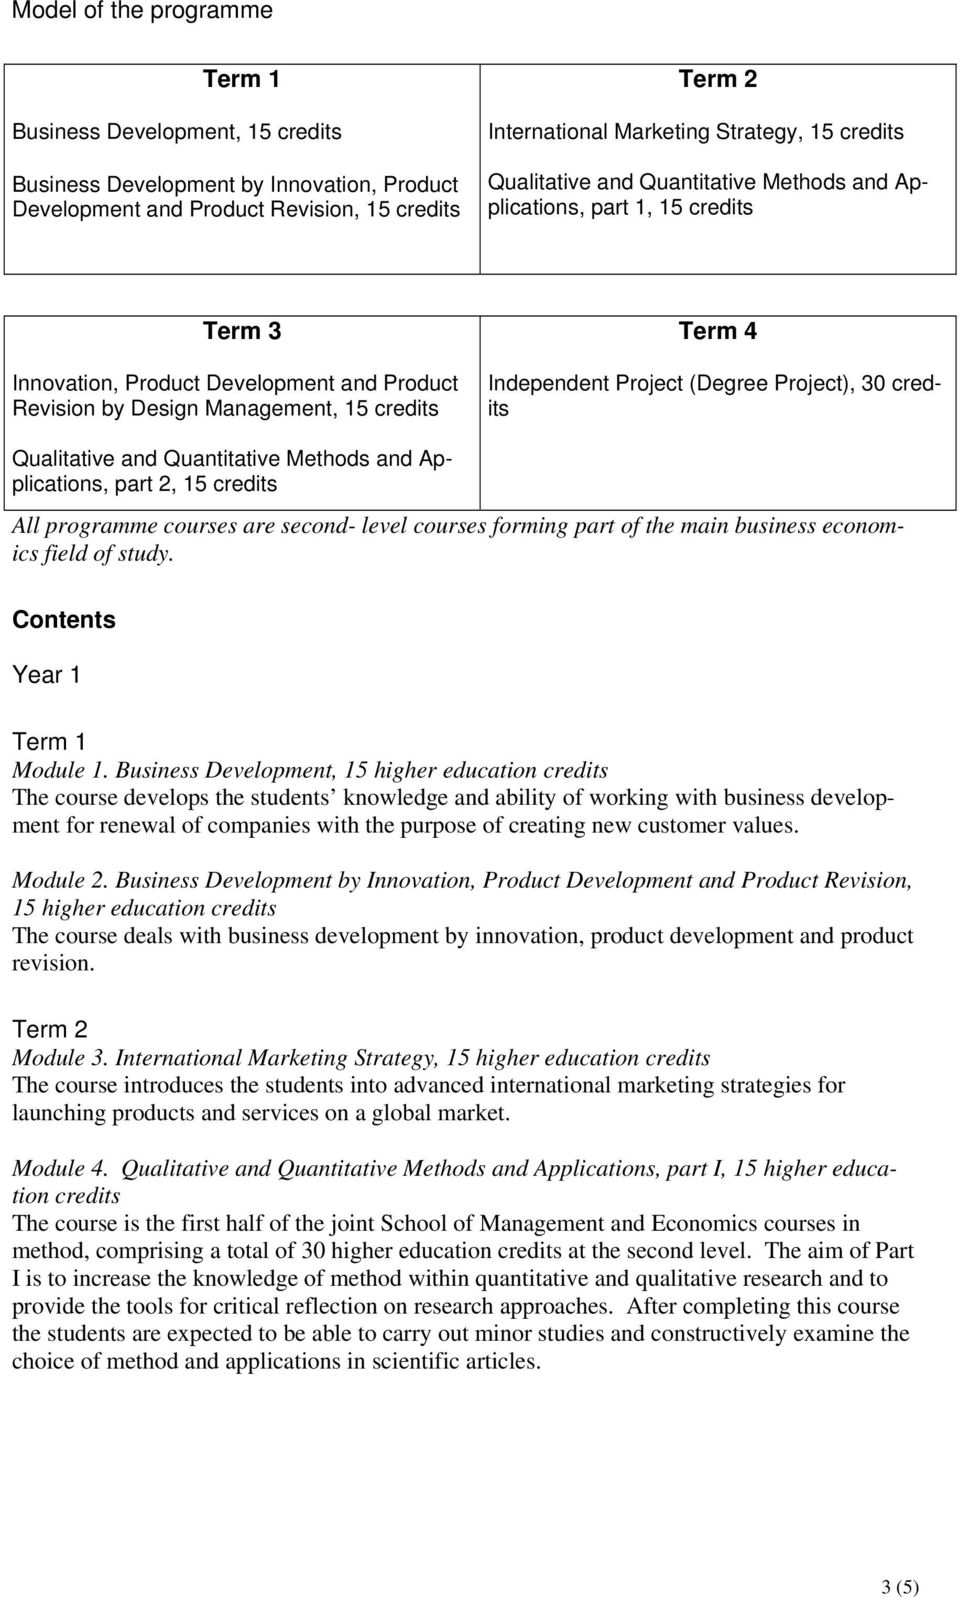 Project (Degree Project), 30 credits Qualitative and Quantitative Methods and Applications, part 2, 15 credits All programme courses are second- level courses forming part of the main business